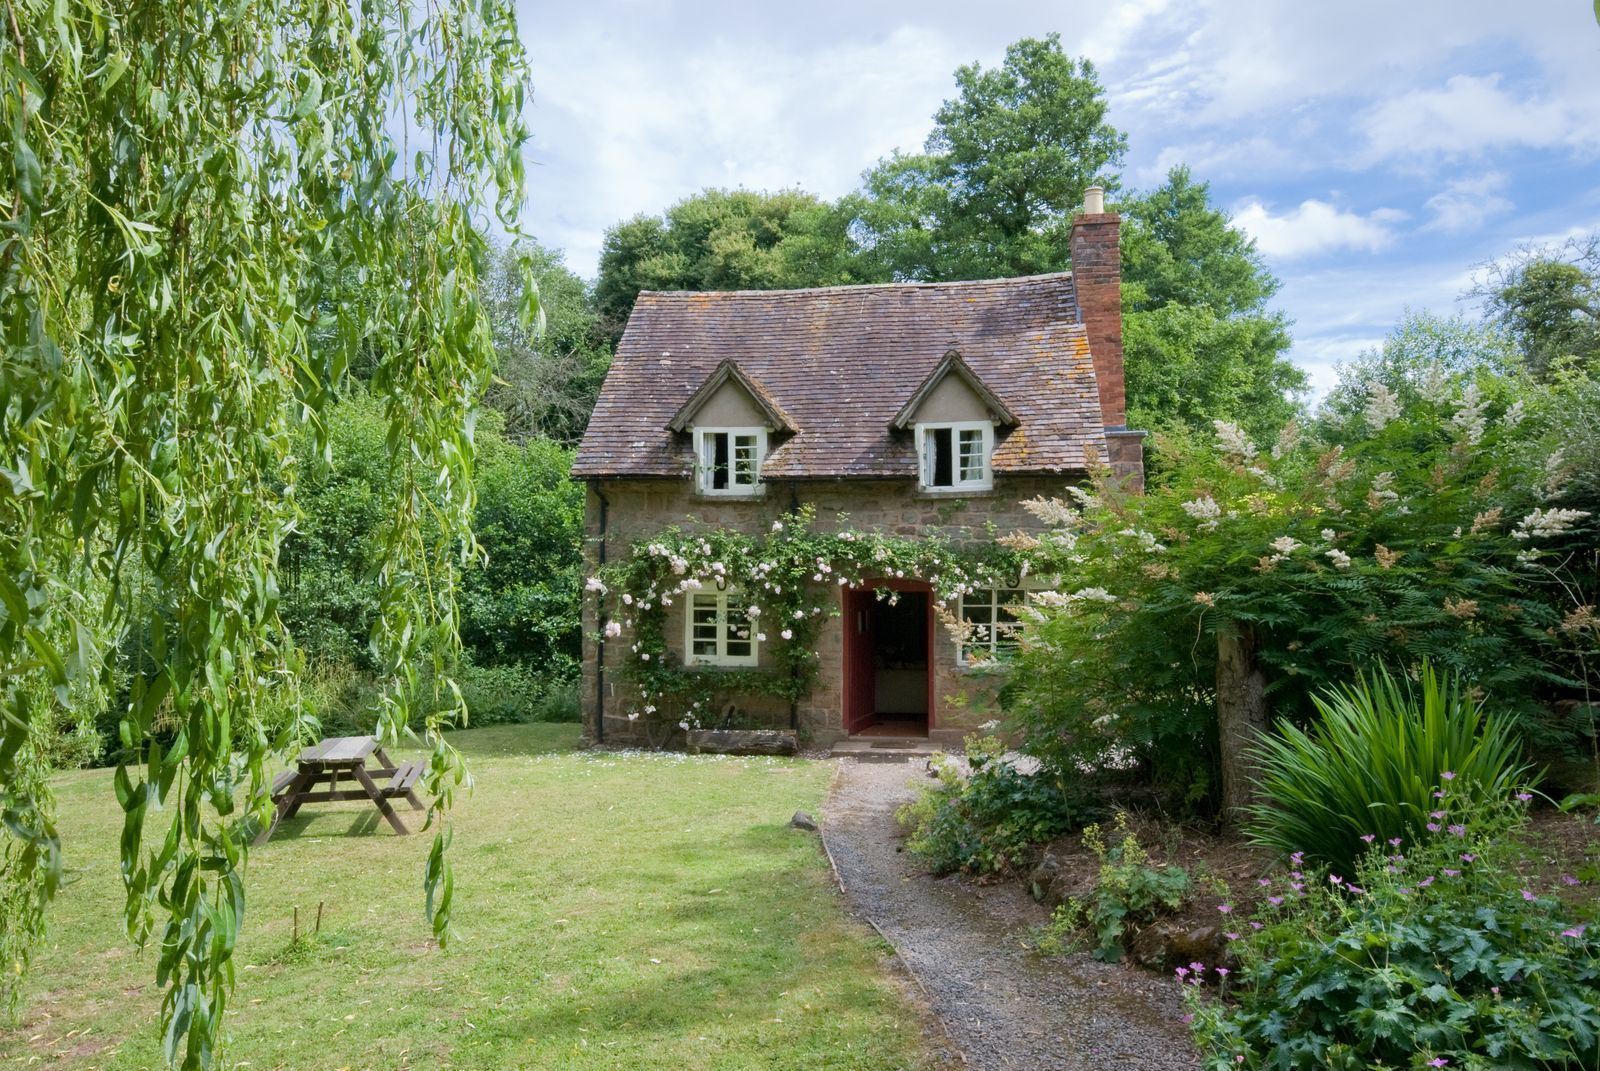 This English cottage could quite possibly be the most romantic place to spend Valentine s Day